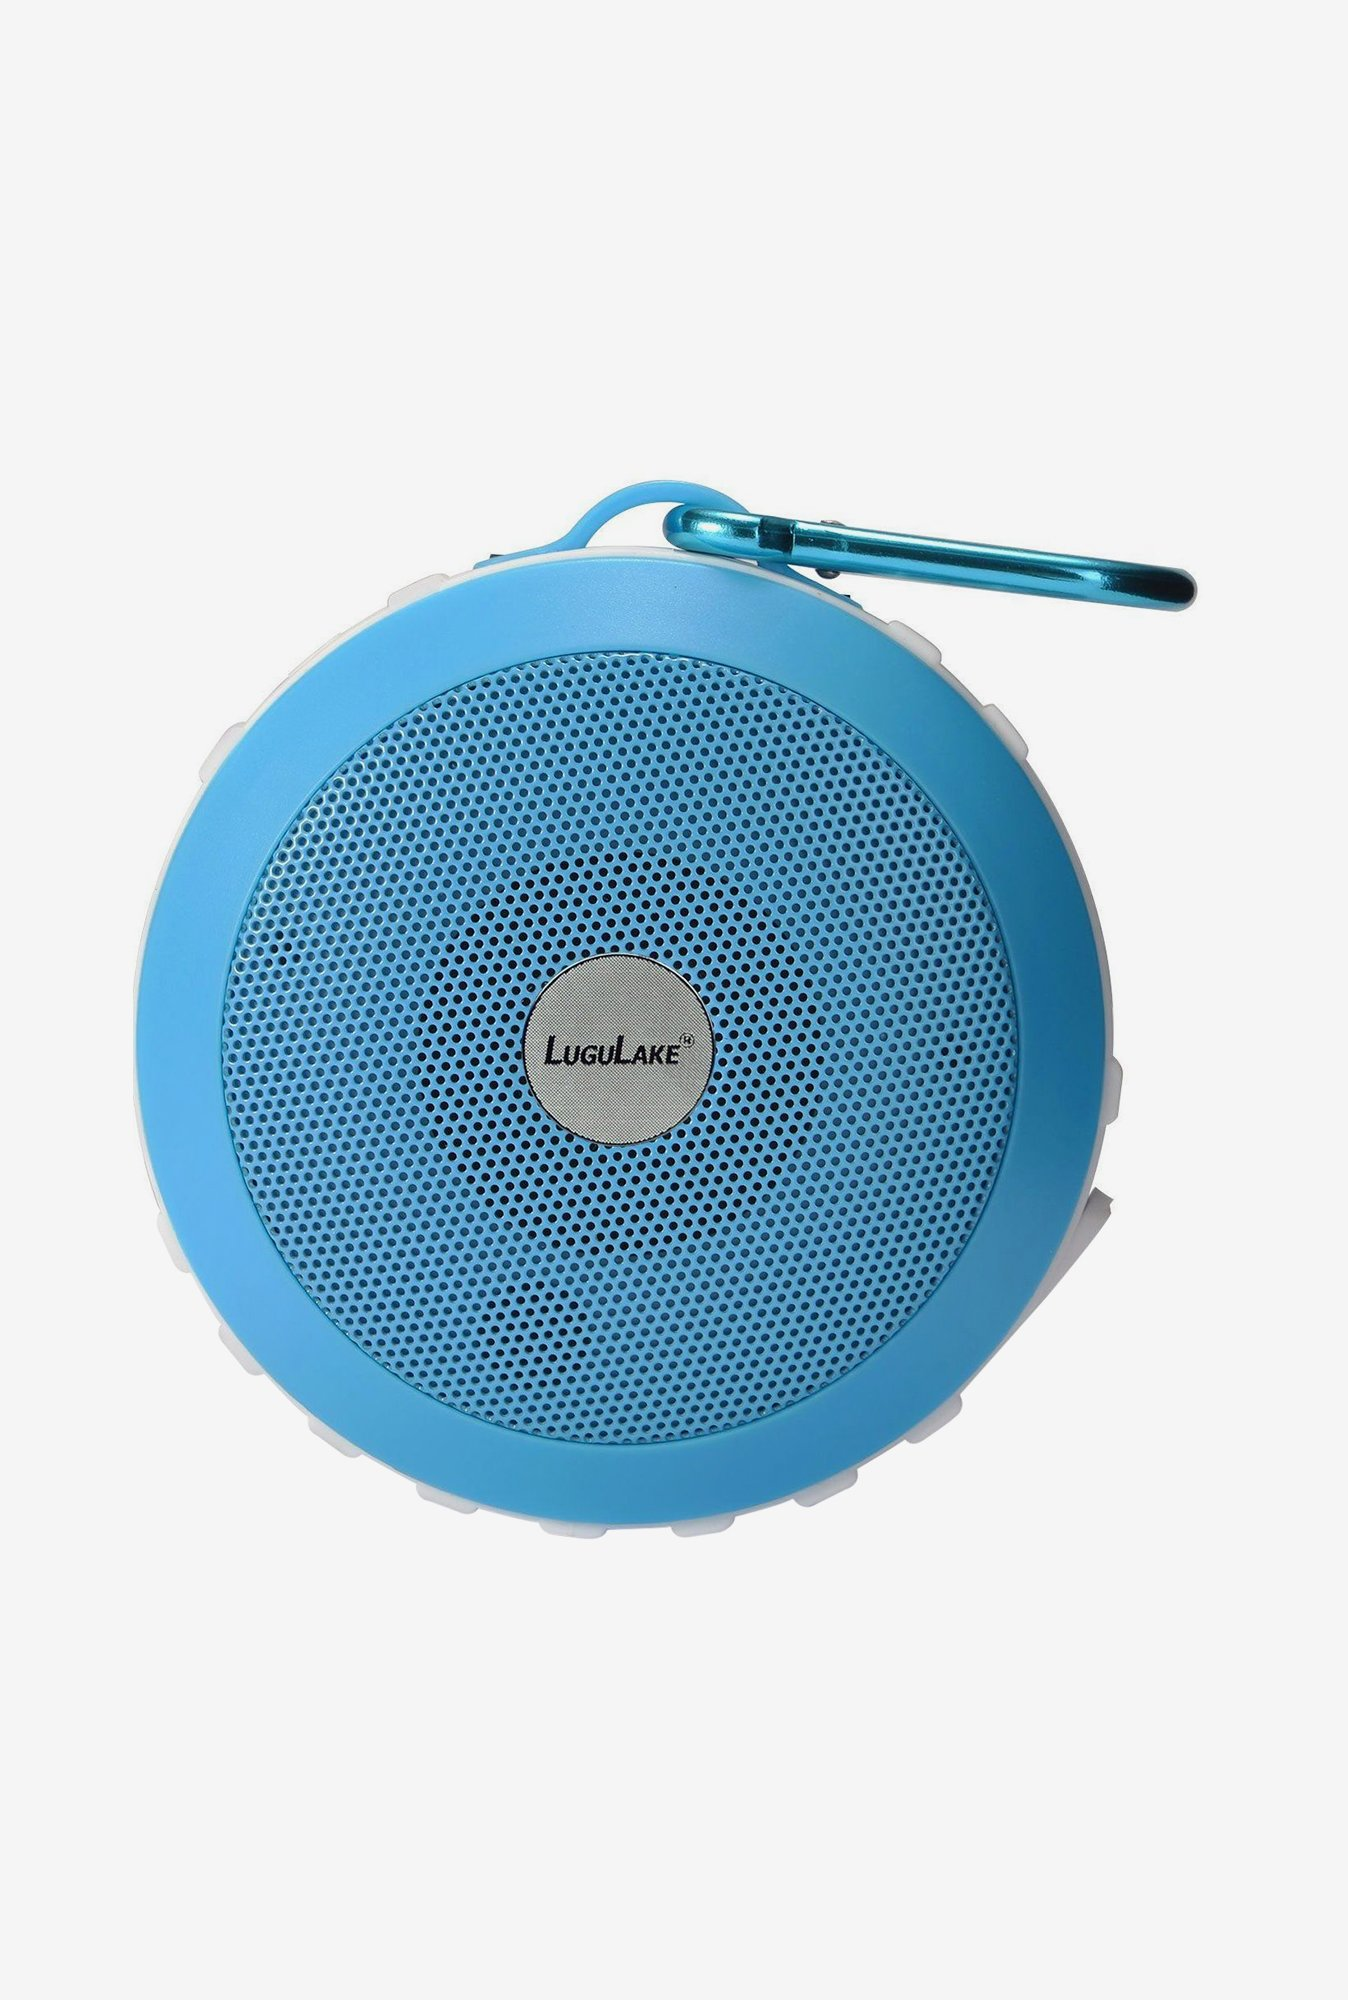 Lugulake BTS14B Shockproof UFO Bluetooth Speaker (Blue)